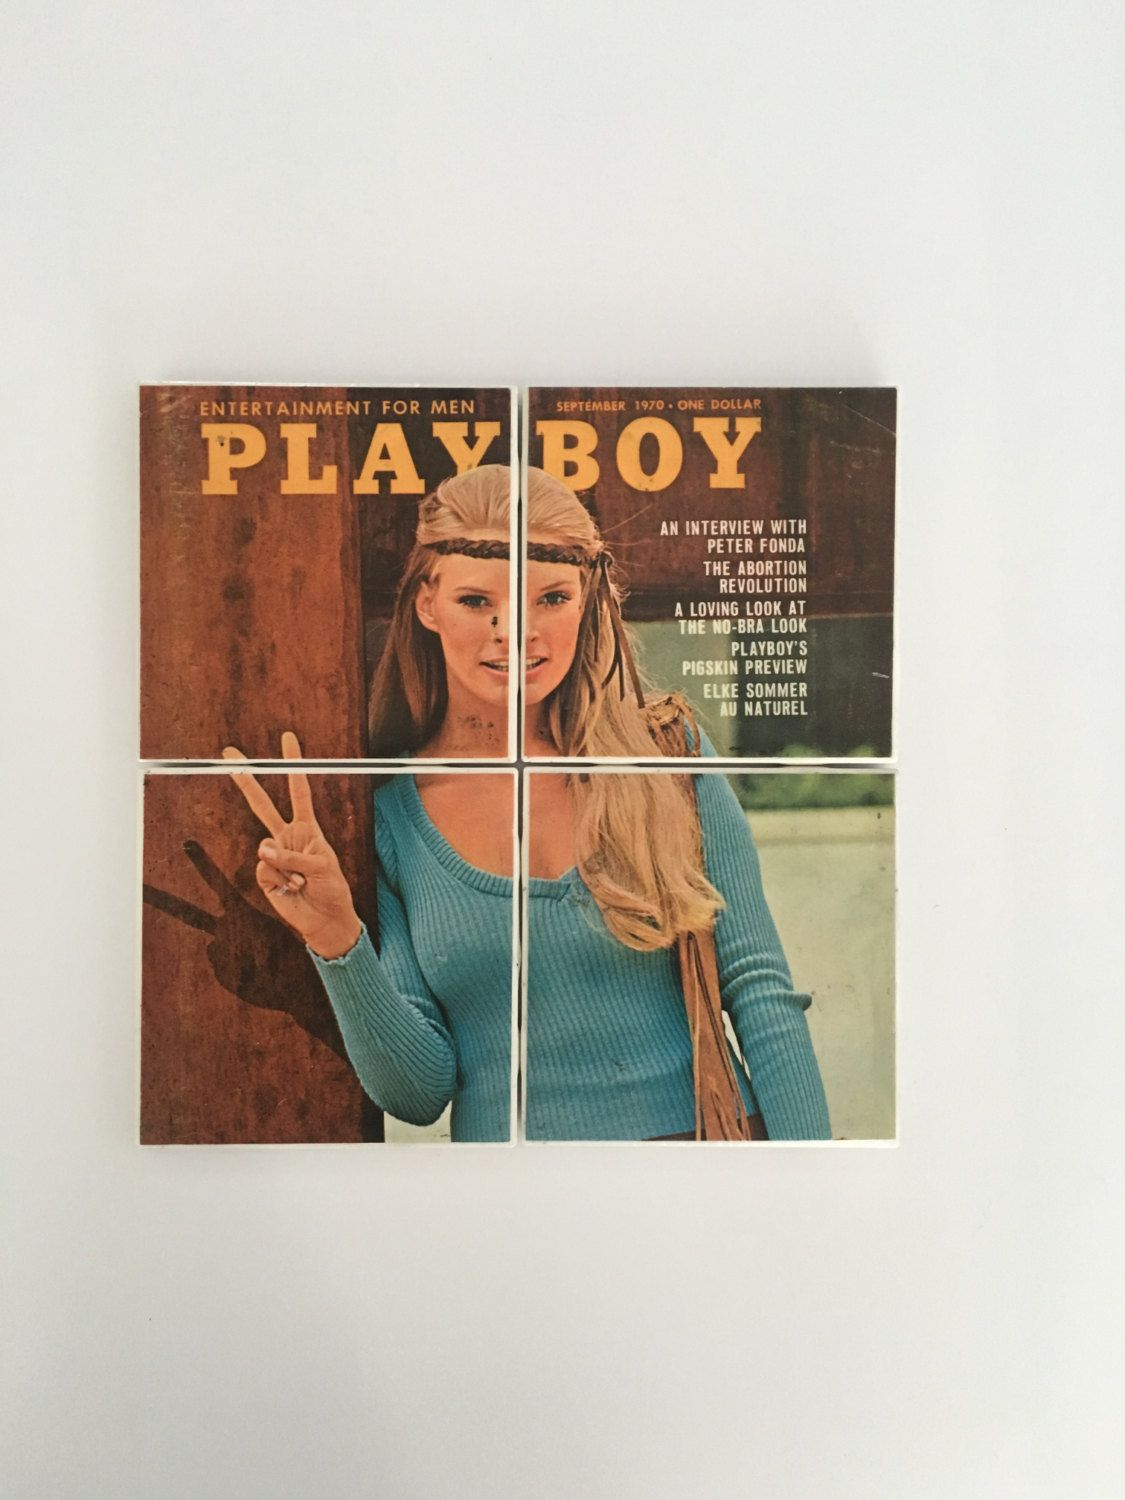 Vintage Old PLAYBOY Hippie Peace Sign Mens Magazine from Sept 1970 on Set of 4 Ceramic Heat Resistant Drink Beverage Coasters + Felt Backing by UpcyclingIt on Etsy